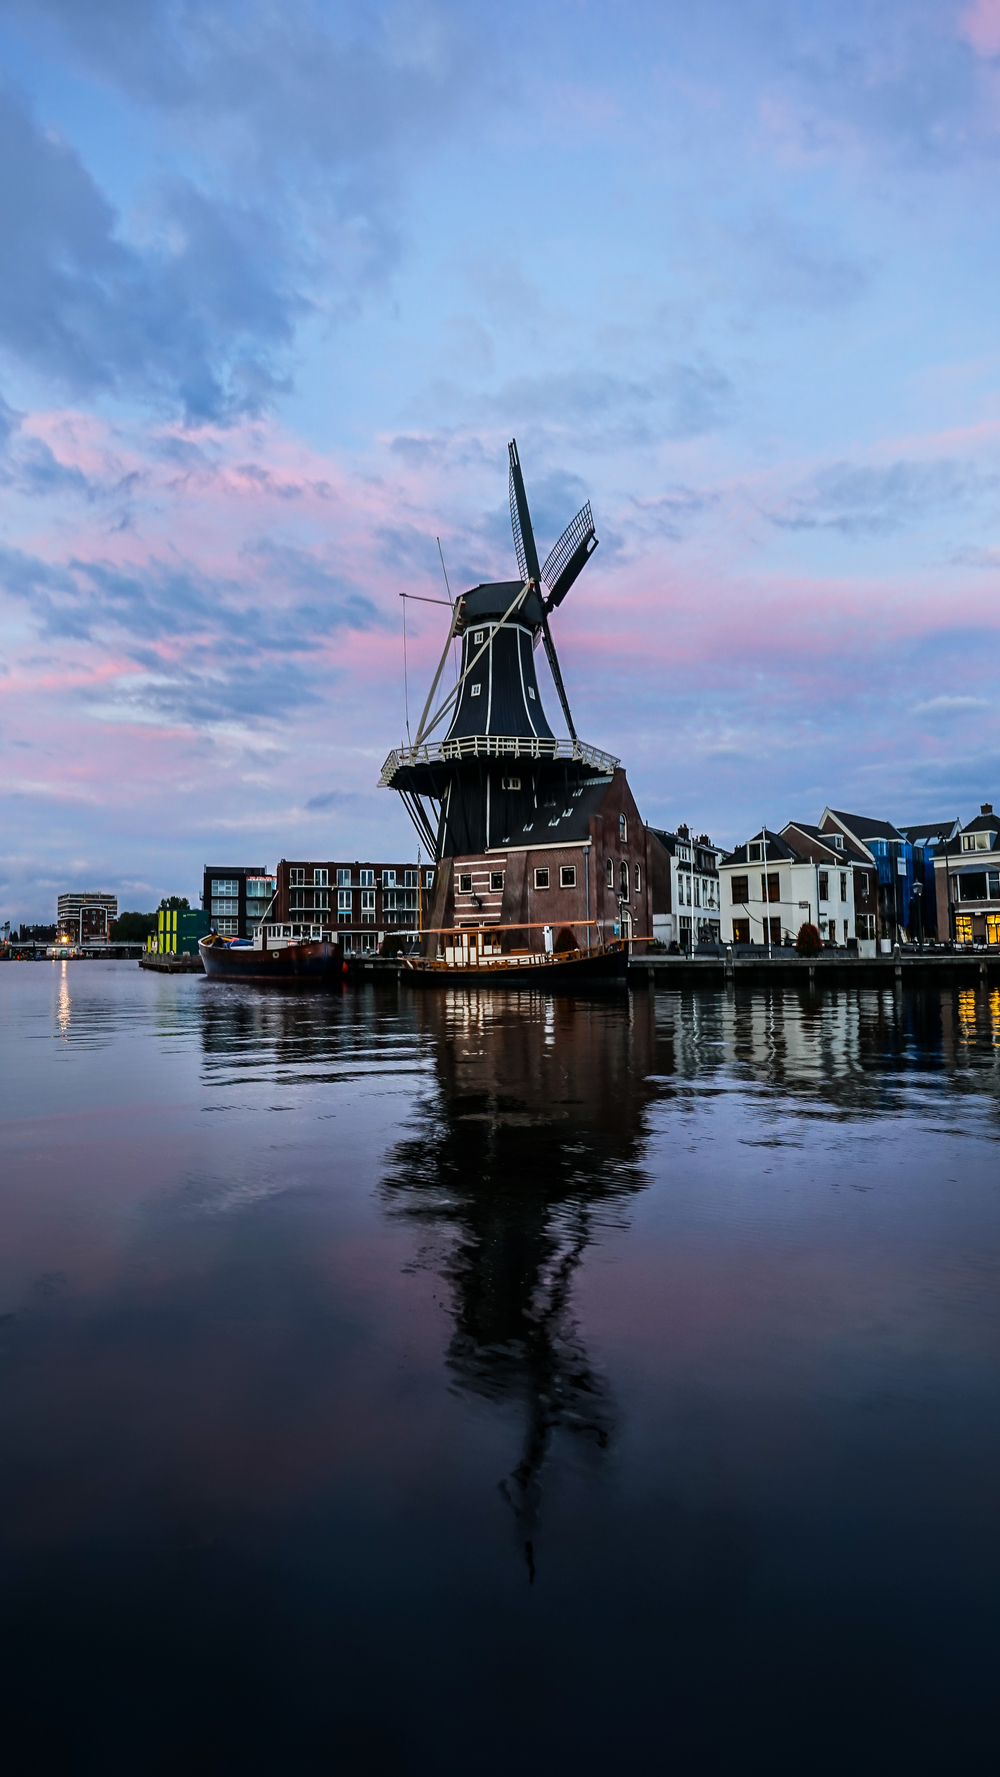 THE WINDMILLS OF HAARLEM // CLICK THRU TO PURCHASE FRANKIEBOYPHOTOGRAPHY AND VIEW MORE WORK